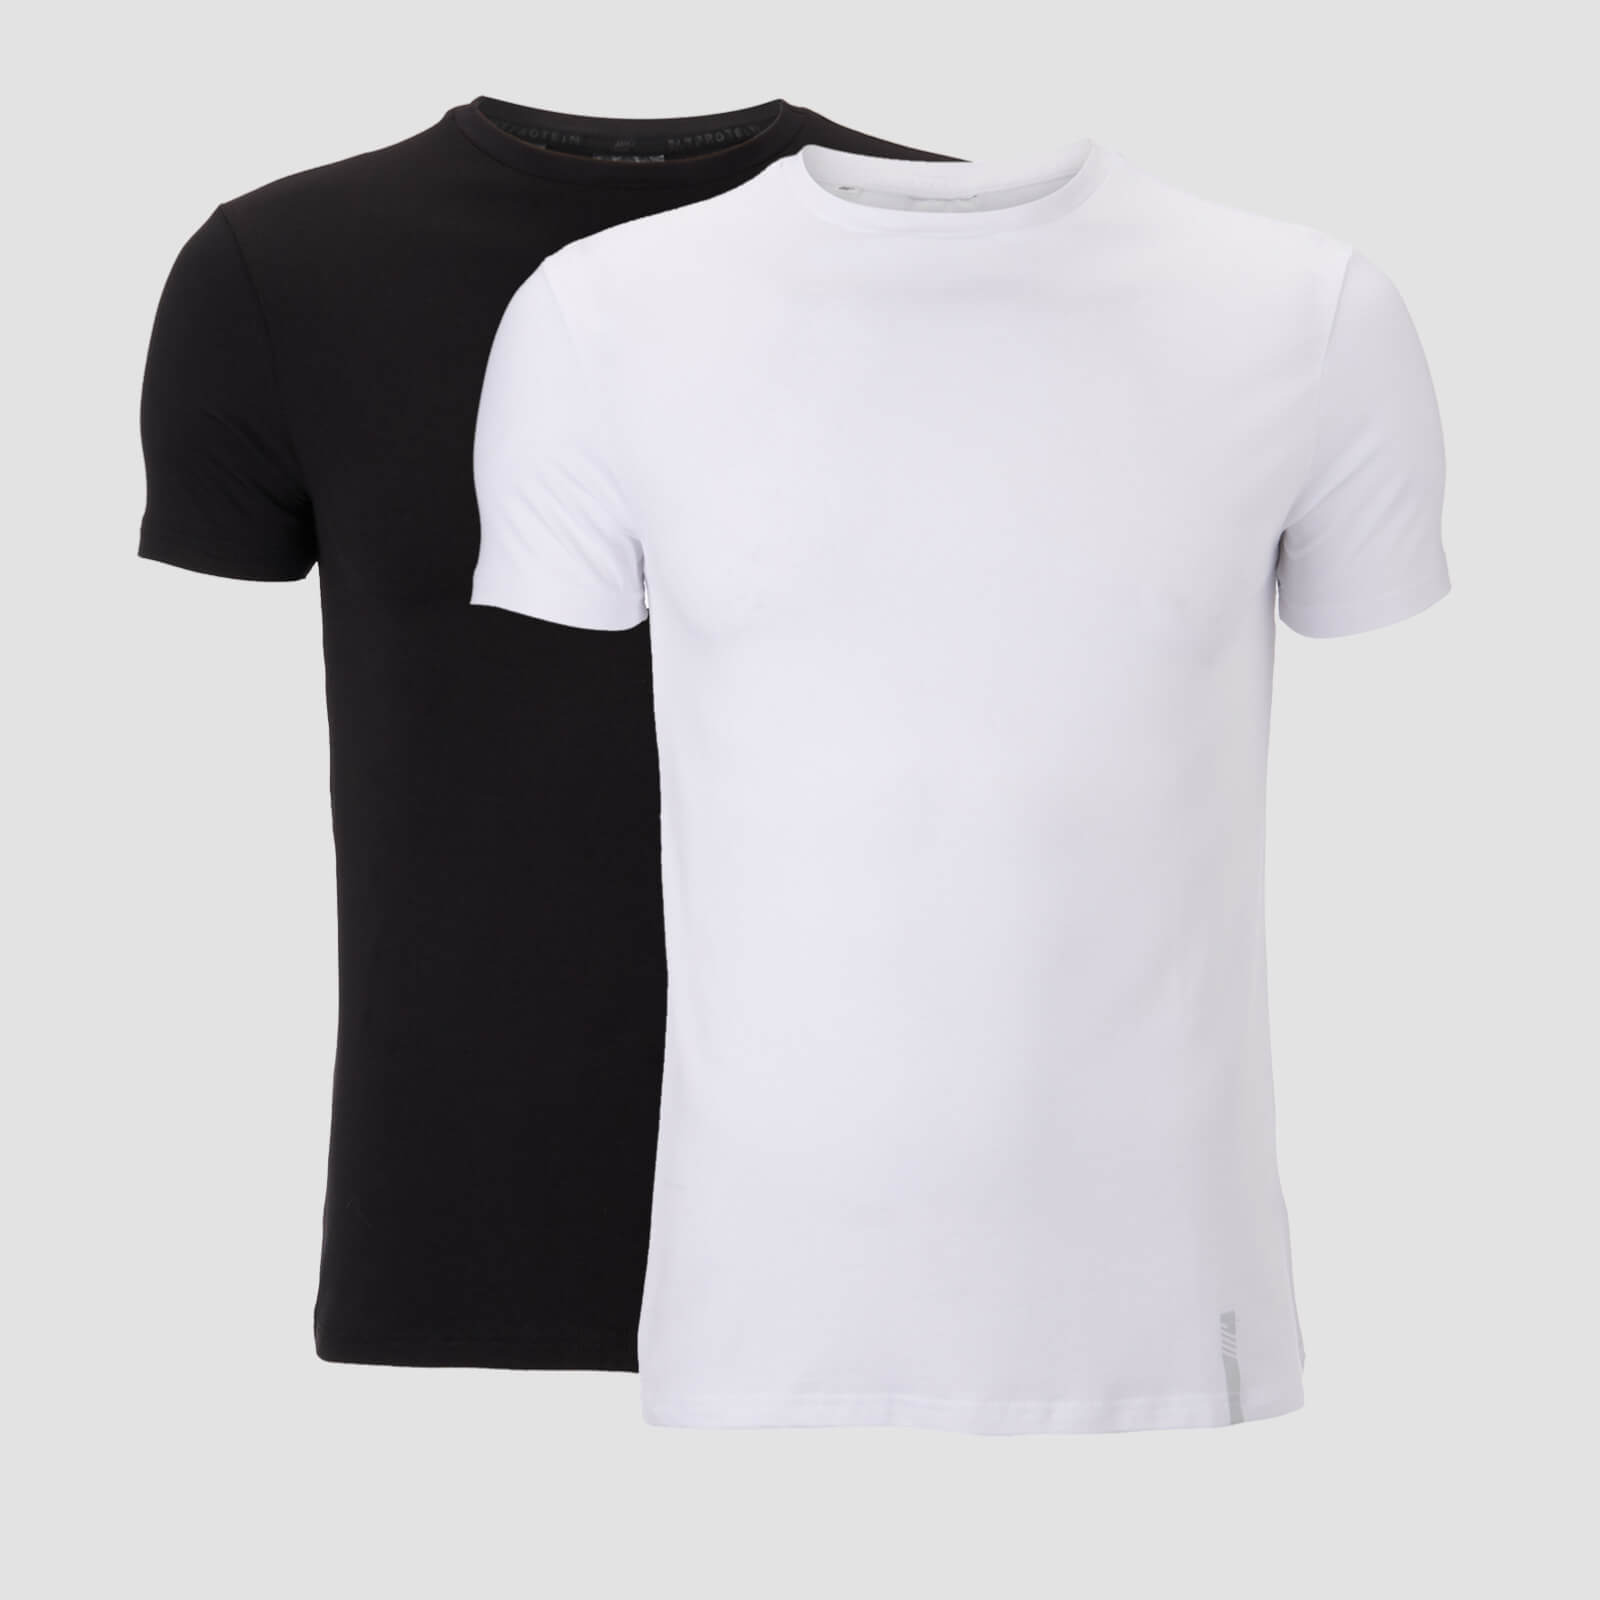 MP Men's Luxe Classic Crew T-Shirt - Black/White (2 Pack) - XS